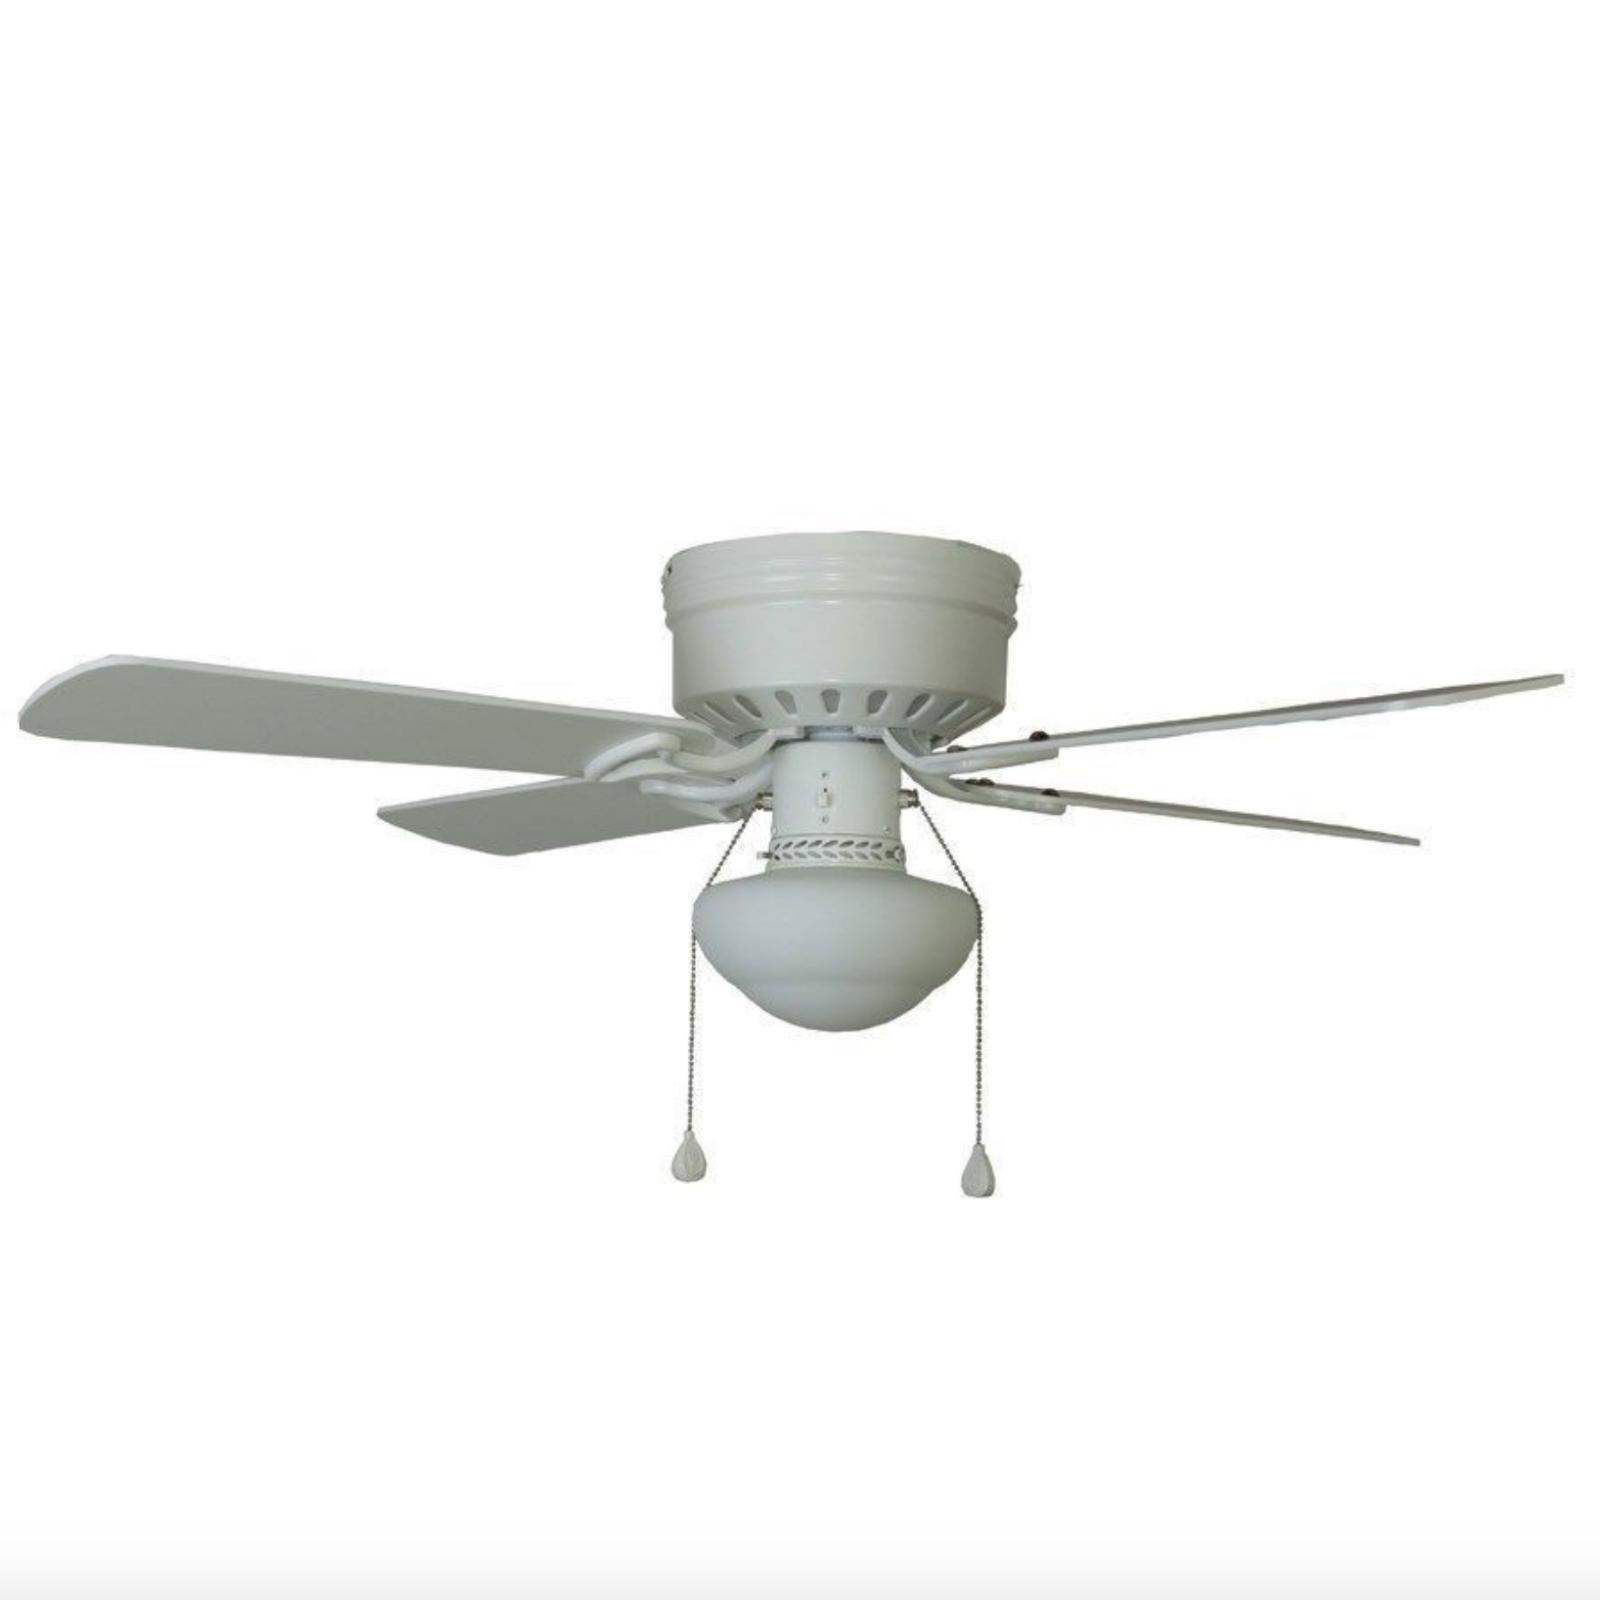 Harbor Breeze 42 WHITE Ceiling Fan with Kit